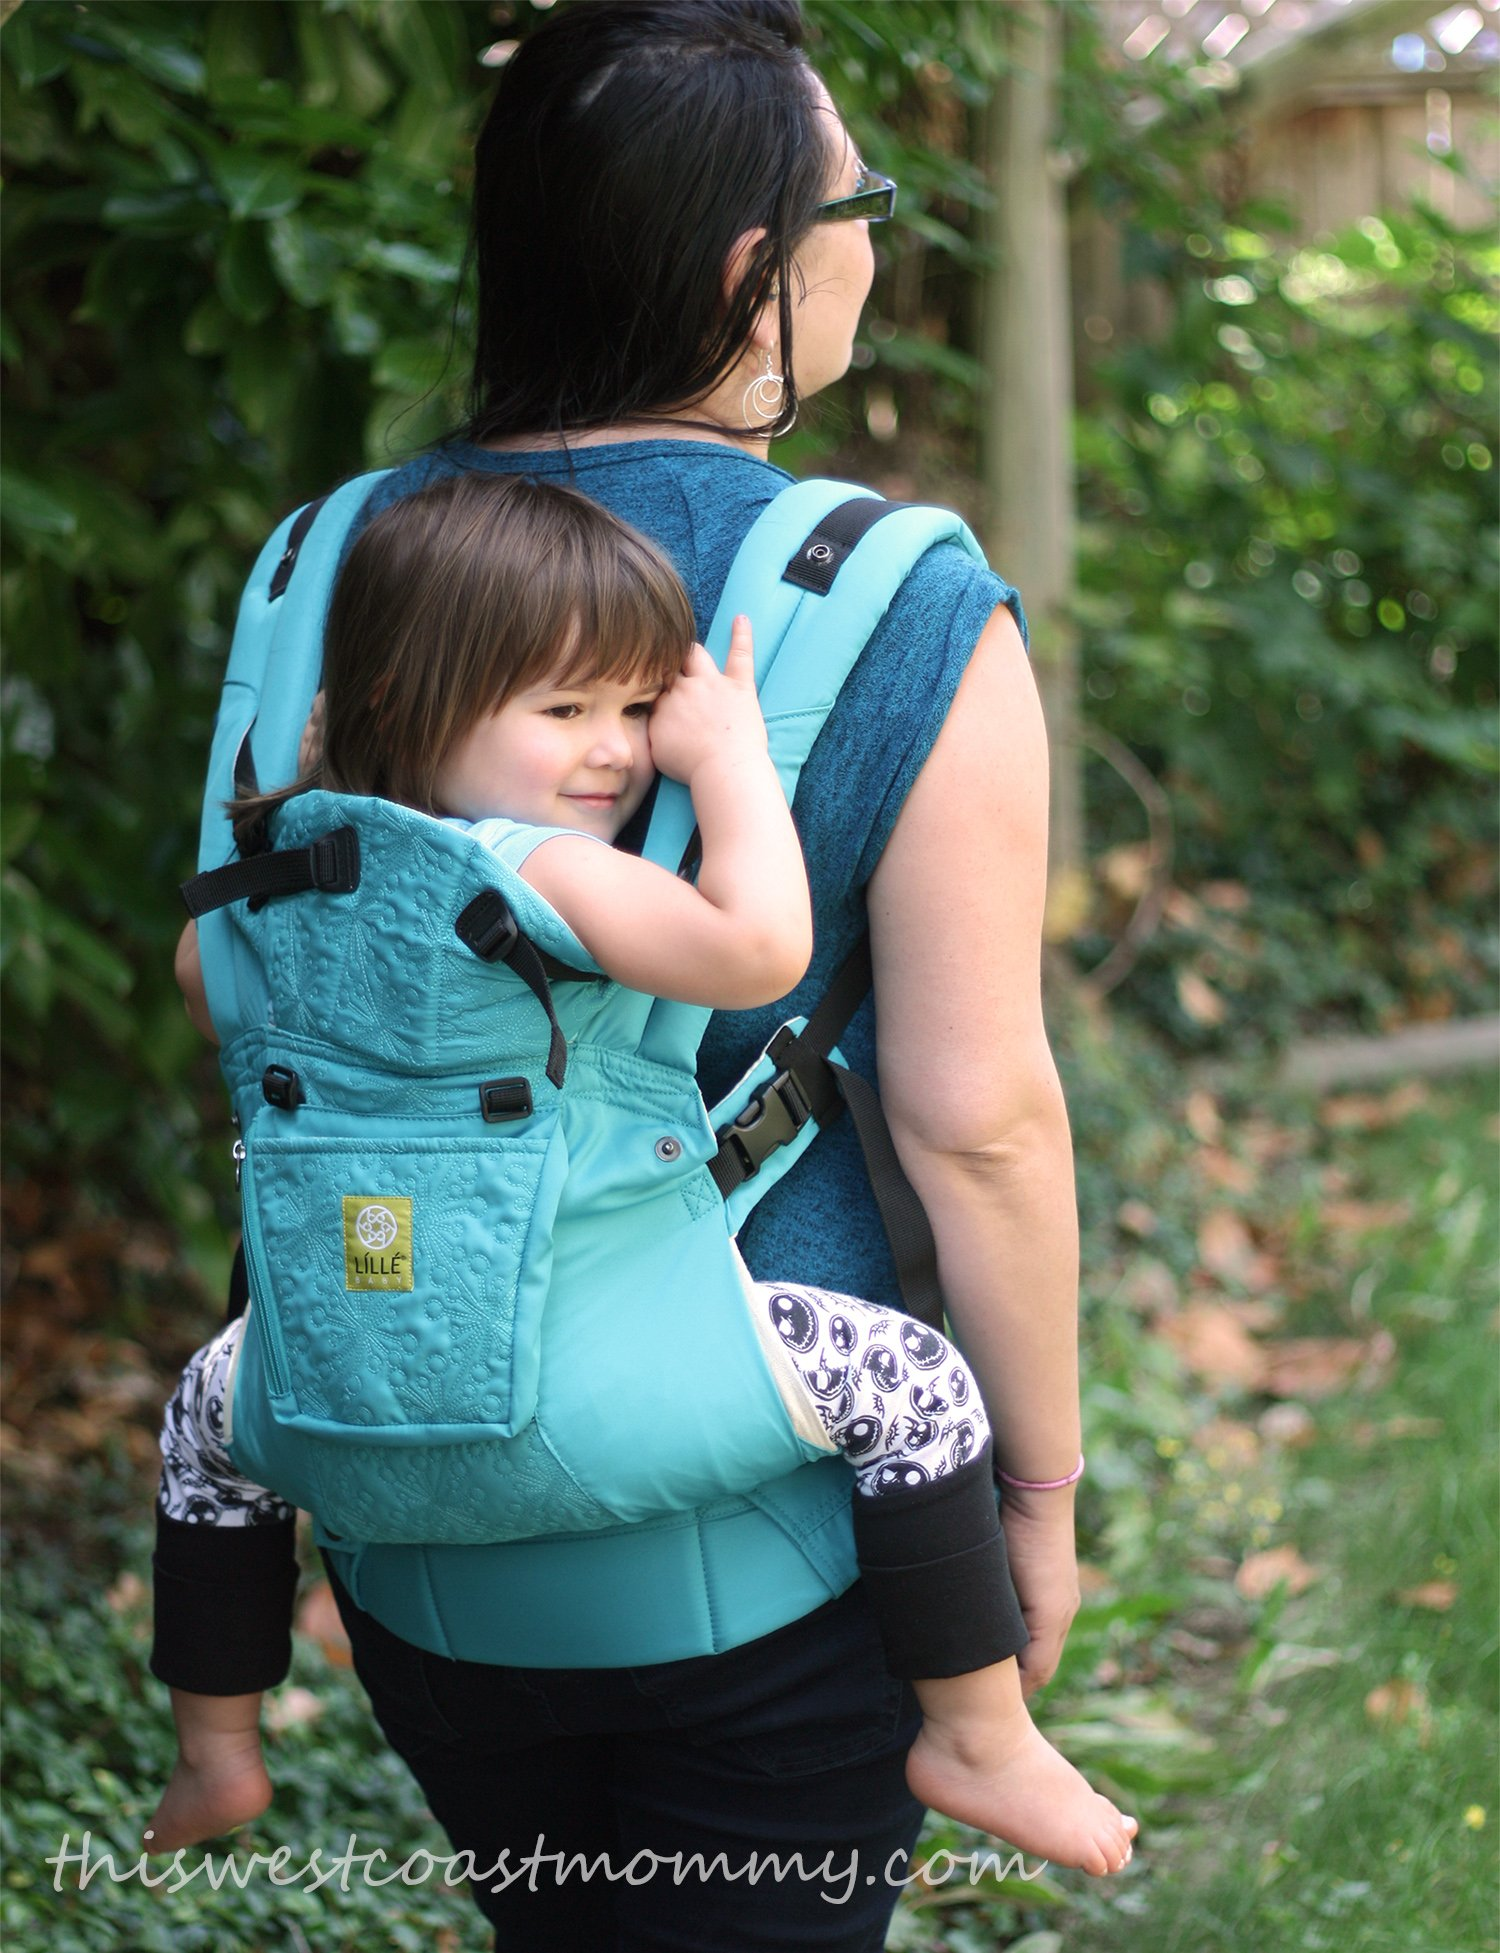 L 205 Ll 201 Baby Complete Embossed Baby Carrier Review This